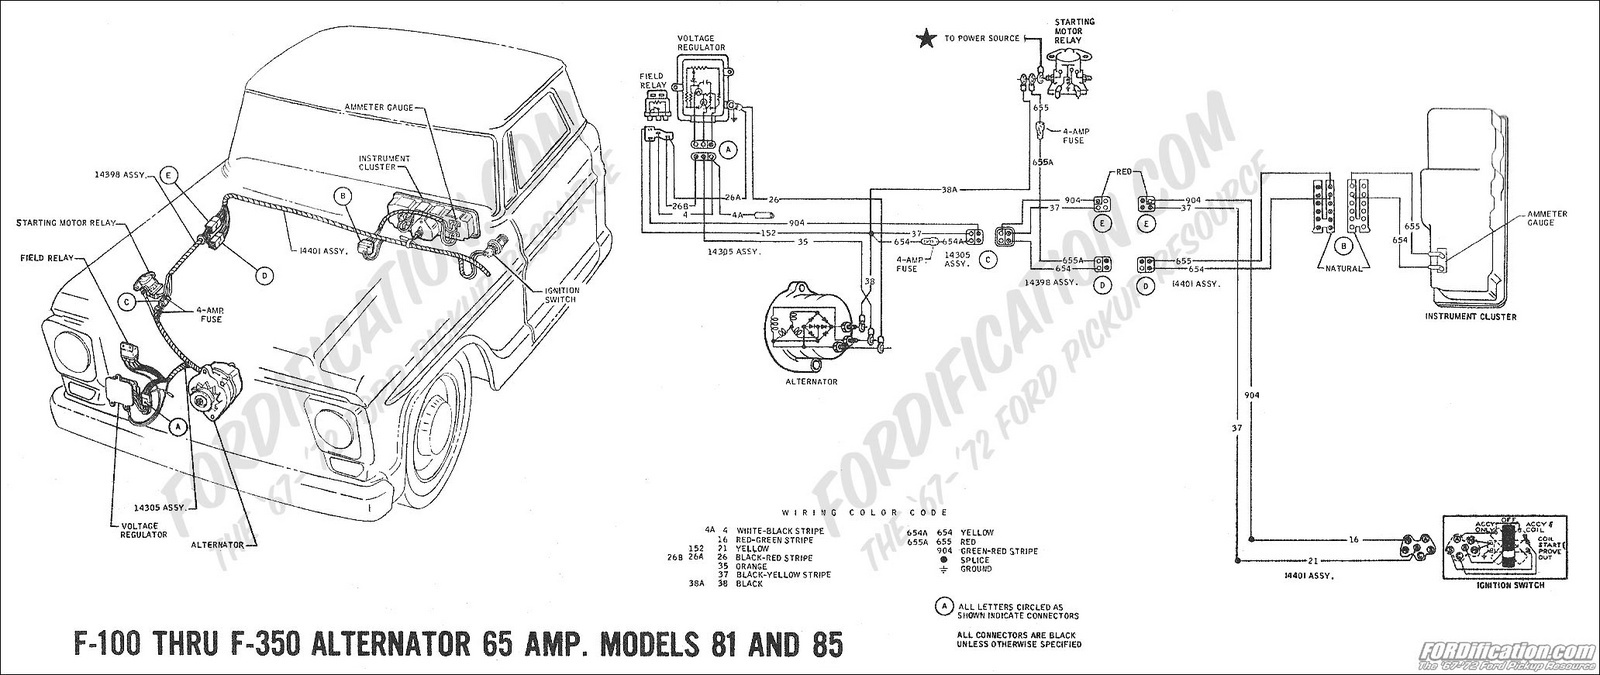 1974 F100 Ignition Switch Wiring Diagram Starting Know About 1973 Ranchero Electrical Diagrams Ford F 100 Questions I Have A 73 No Power To The